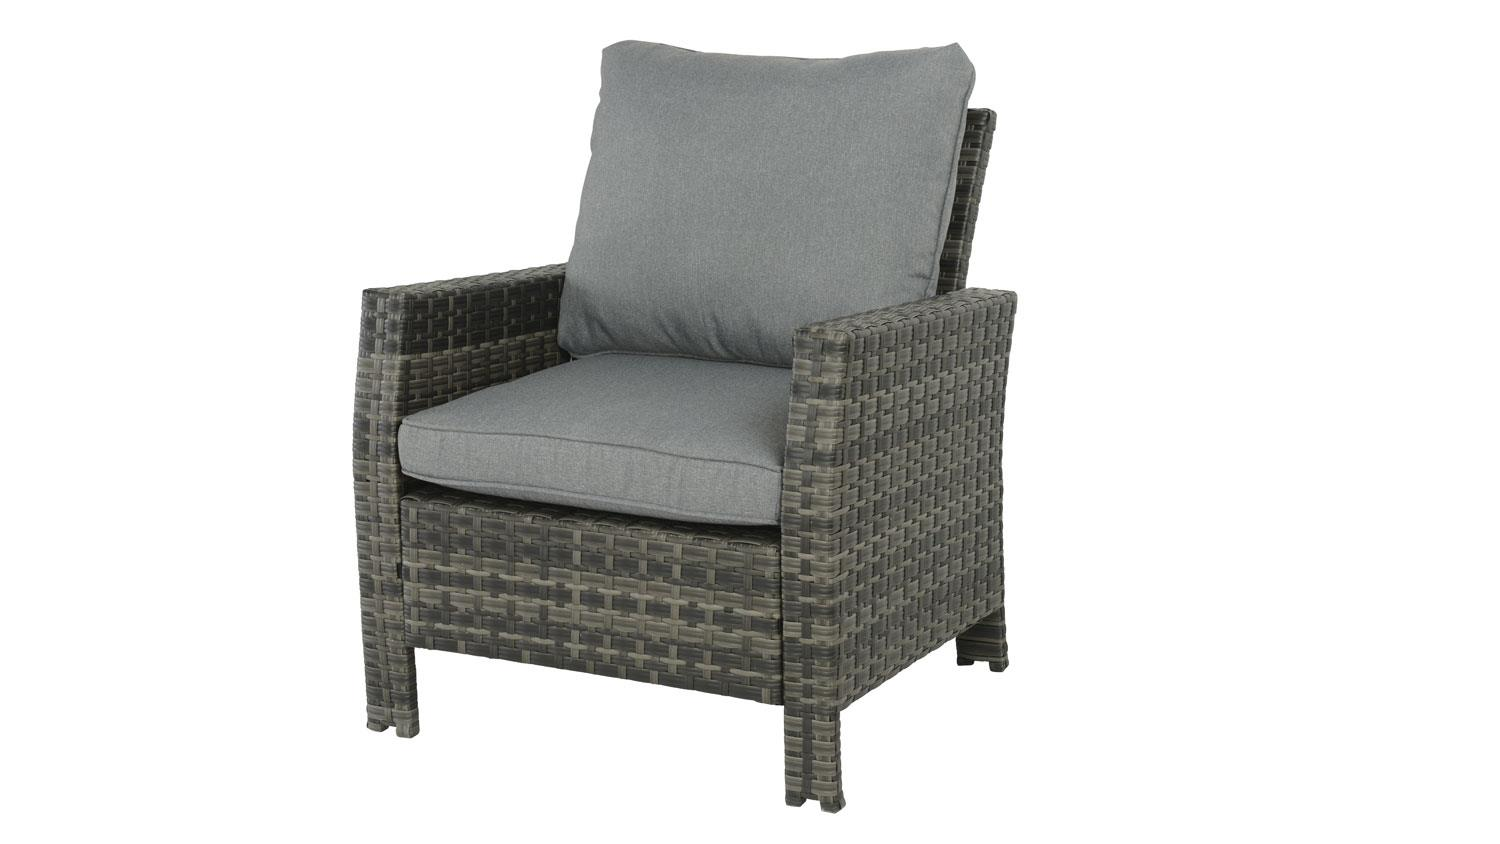 Outdoor Möbel Polyrattan Grau Sessel Madison Outdoor Lounge Chair In Polyrattan Grau Braun